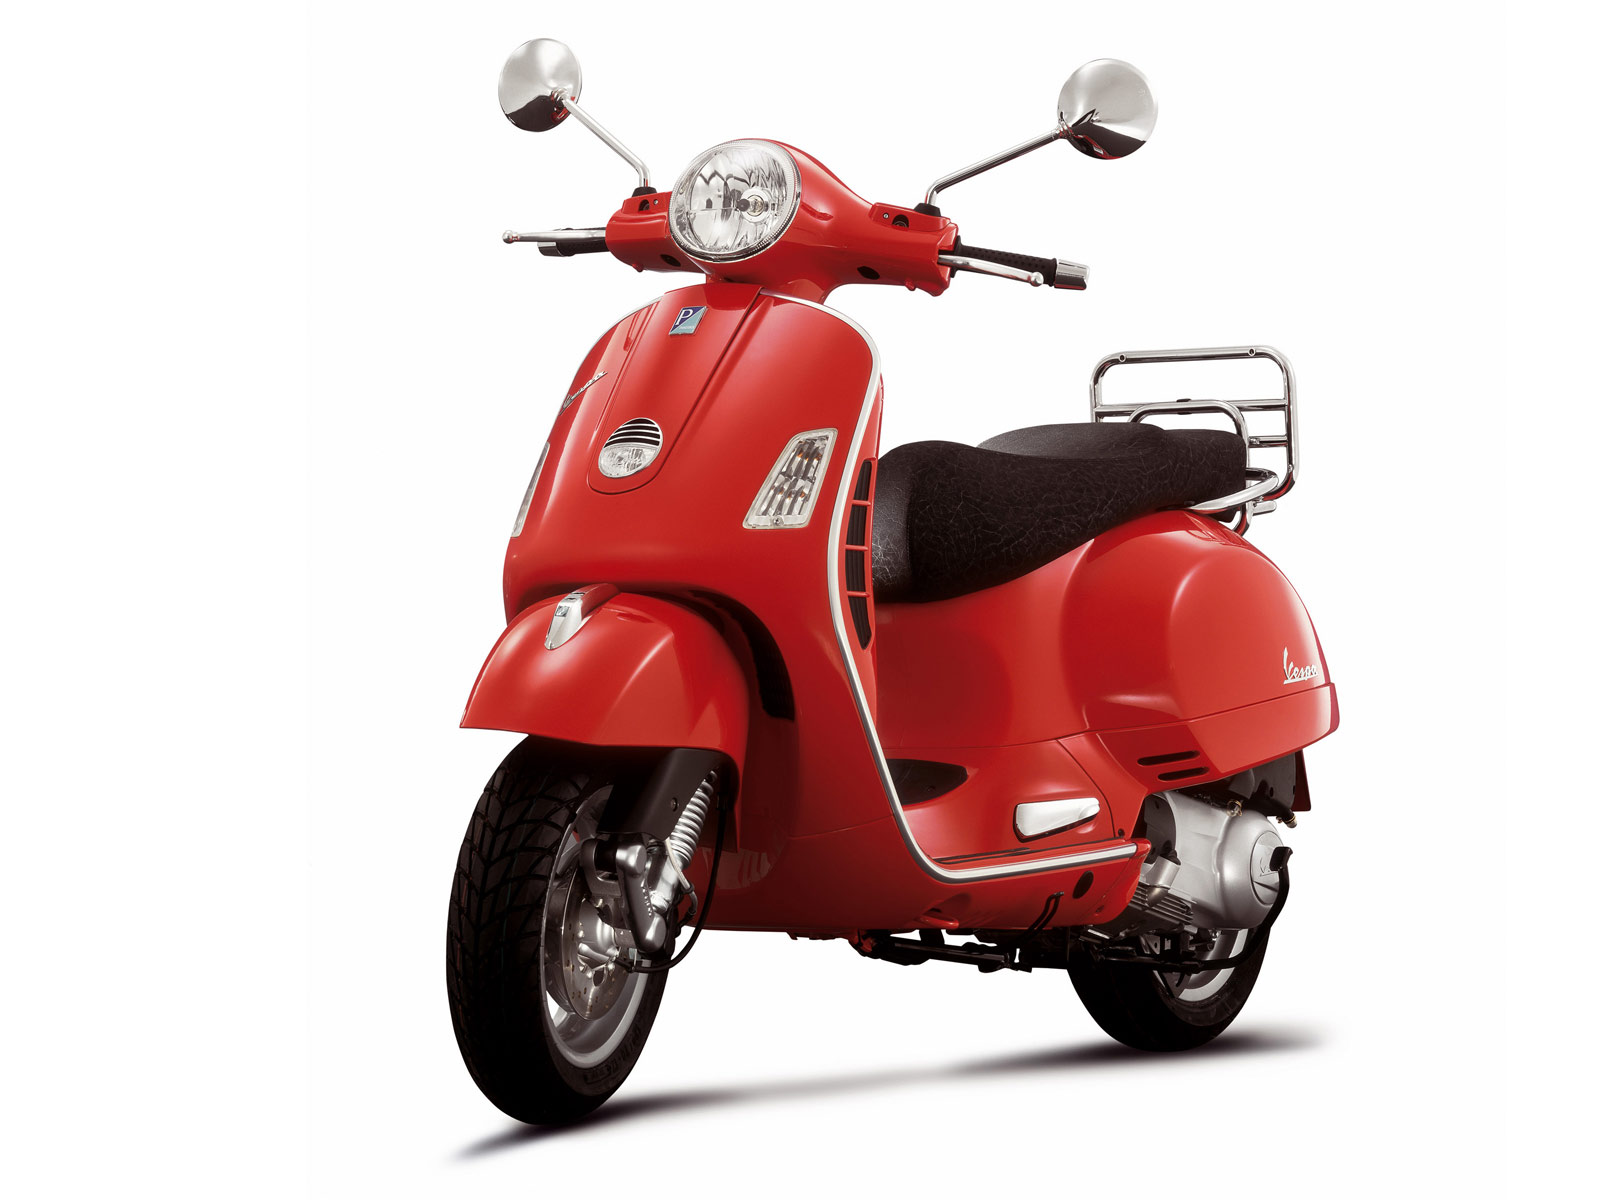 piaggio vespa bike price, specification & features| piaggio bikes